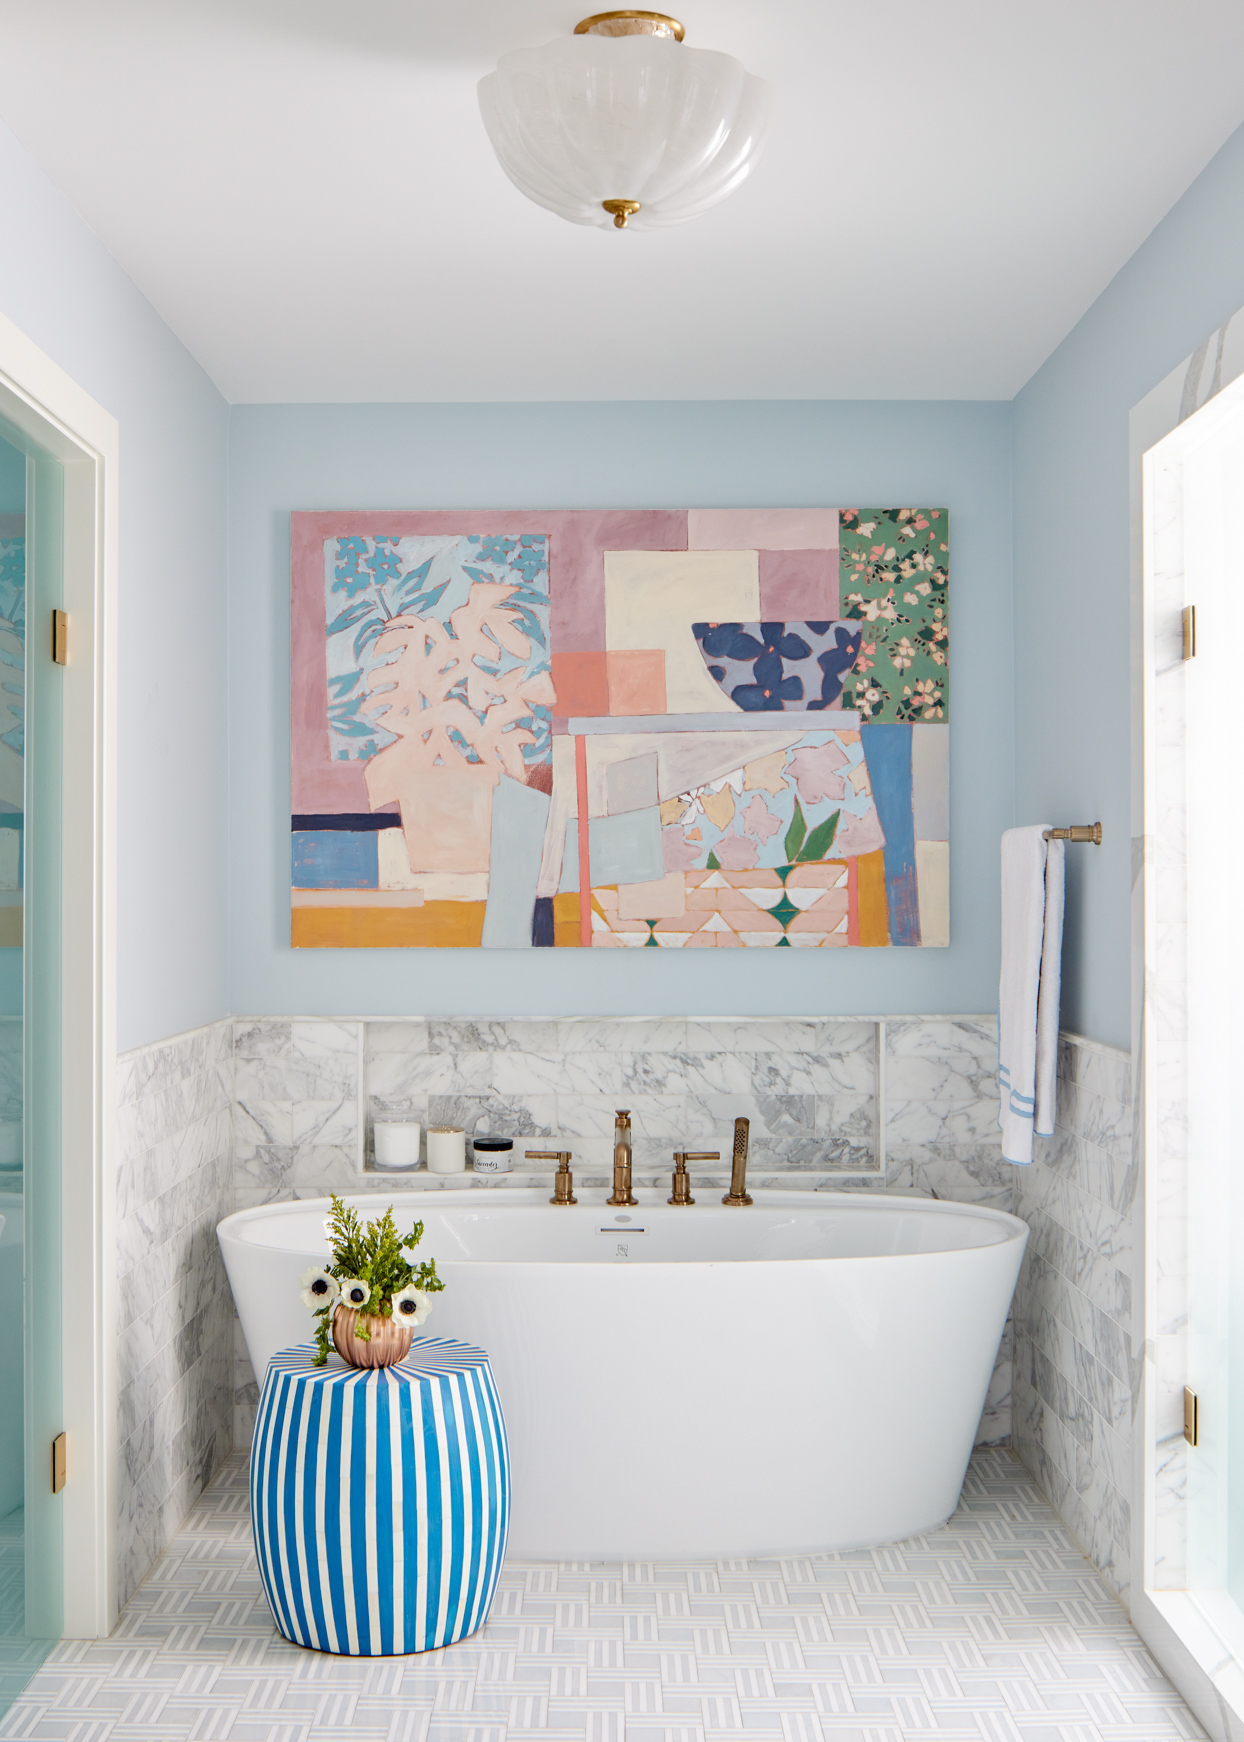 white bathtub with colorful wall art